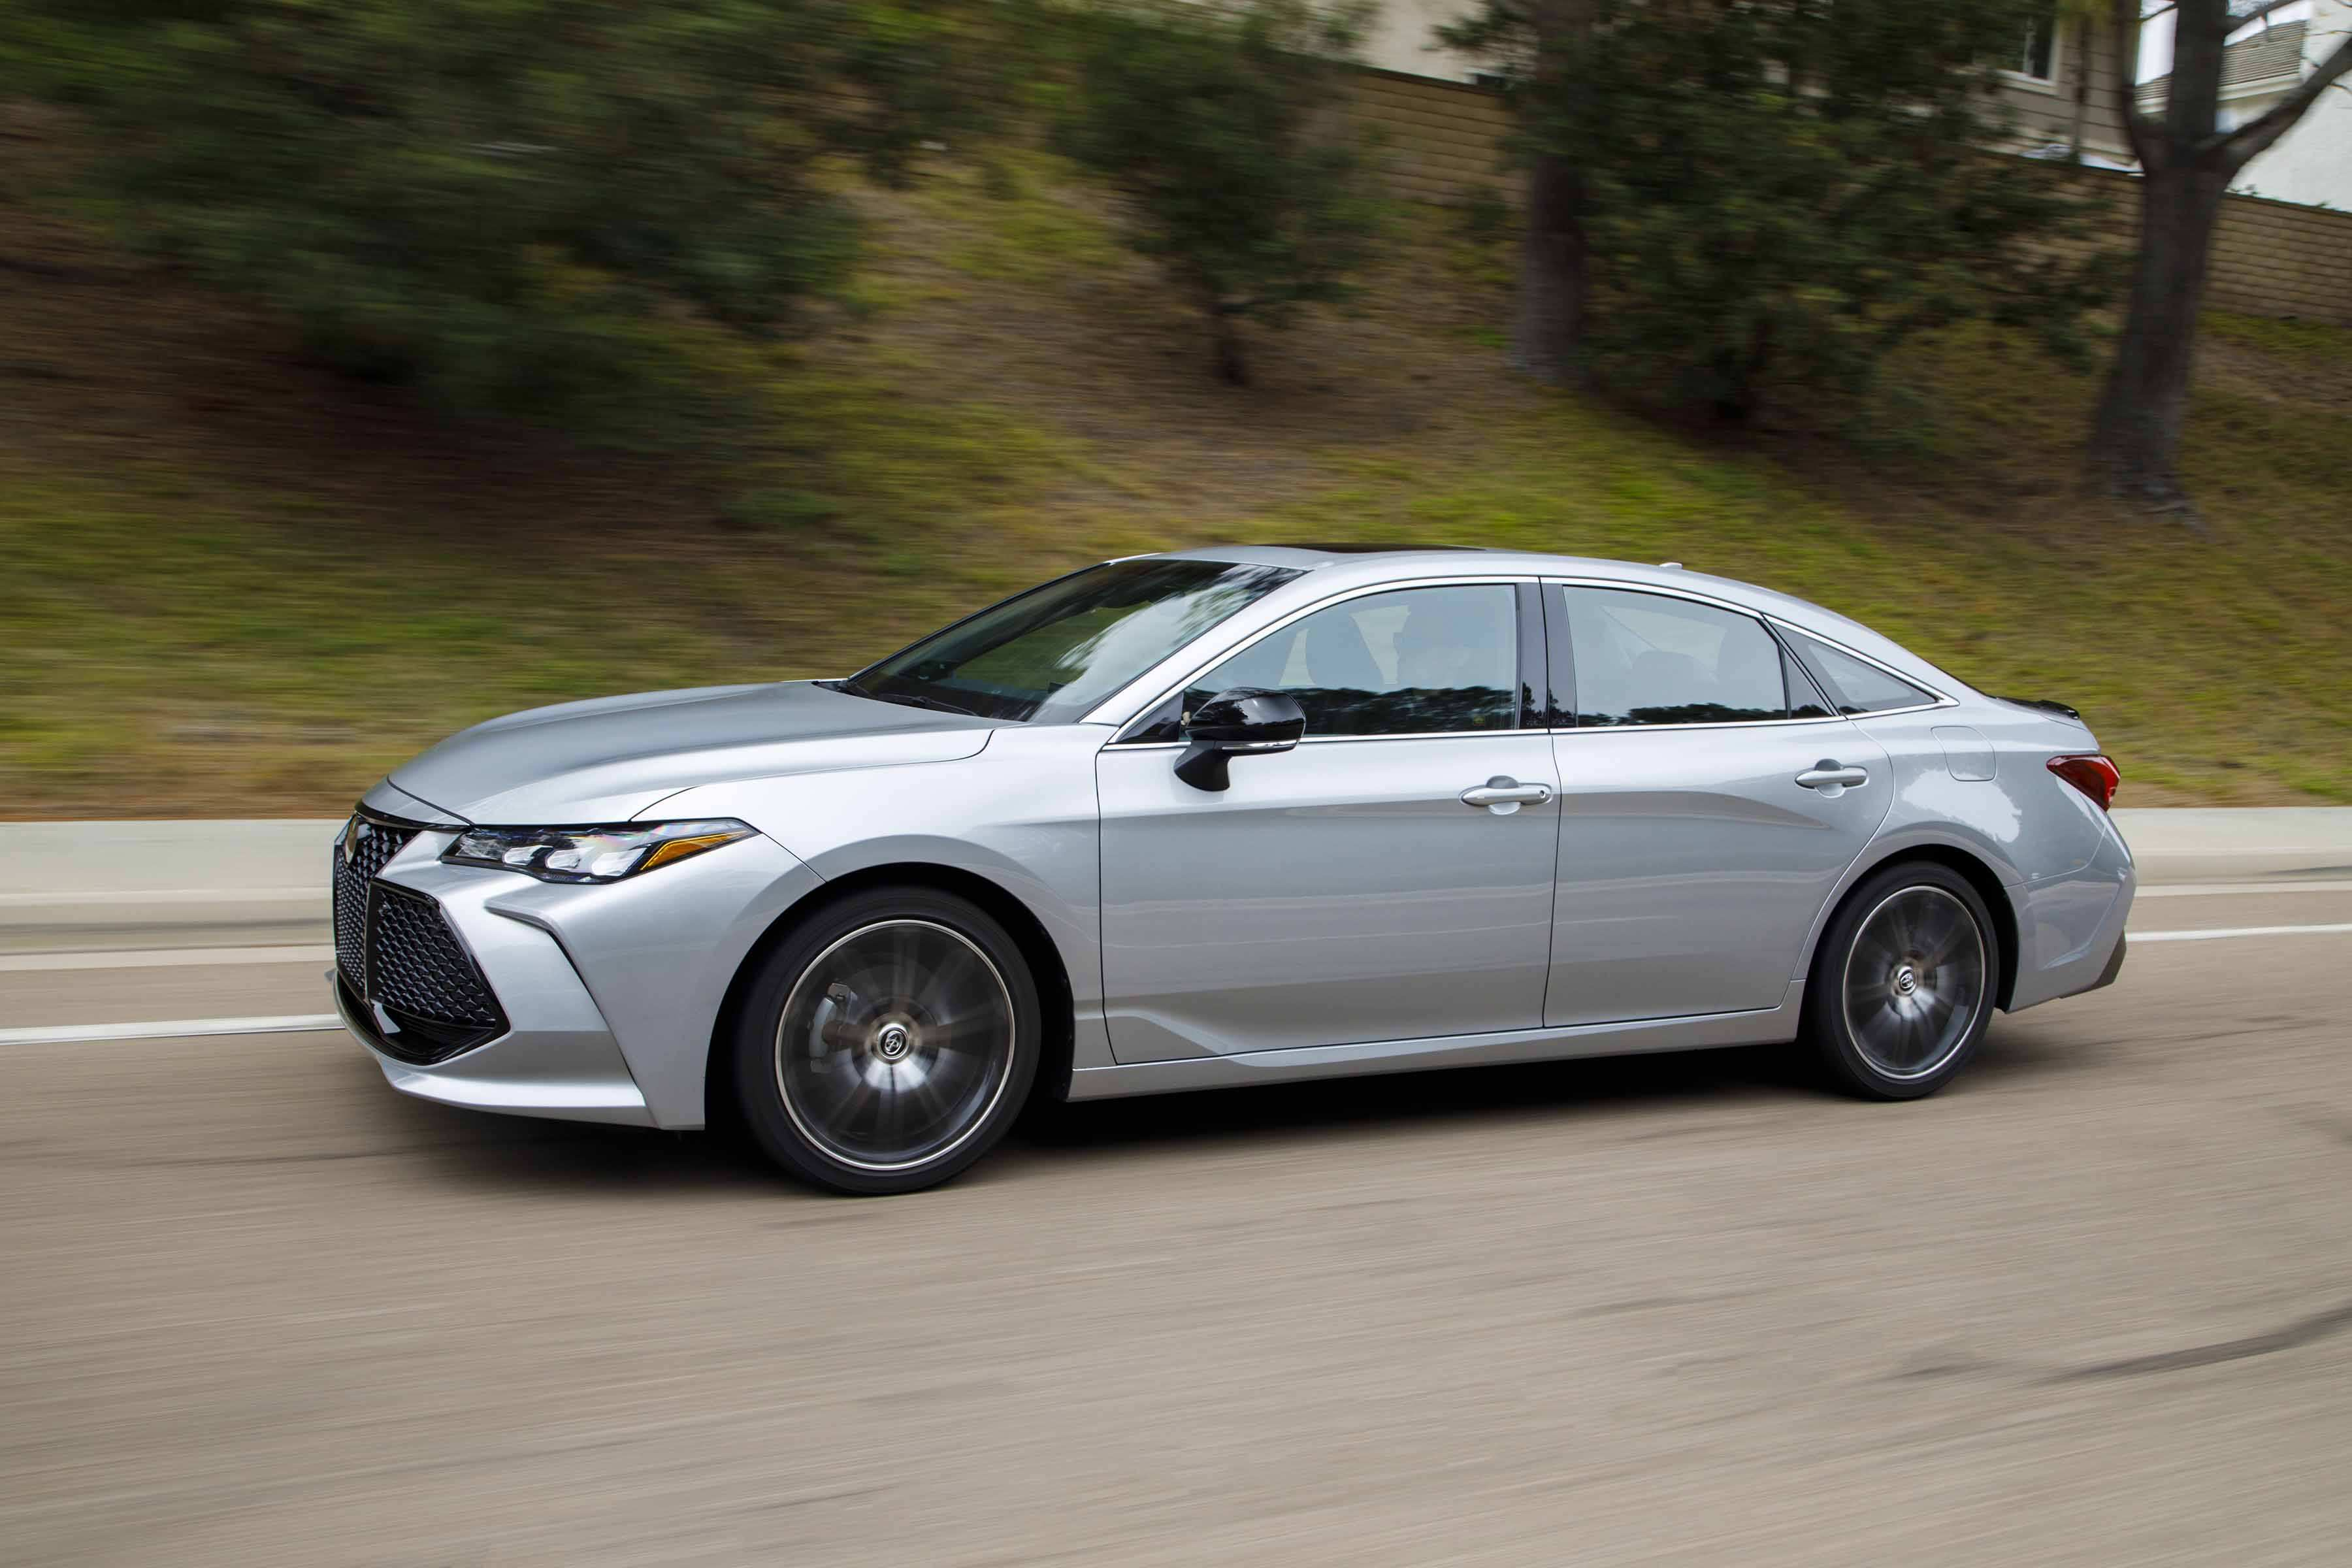 84 All New 2019 Toyota Avalon Exterior